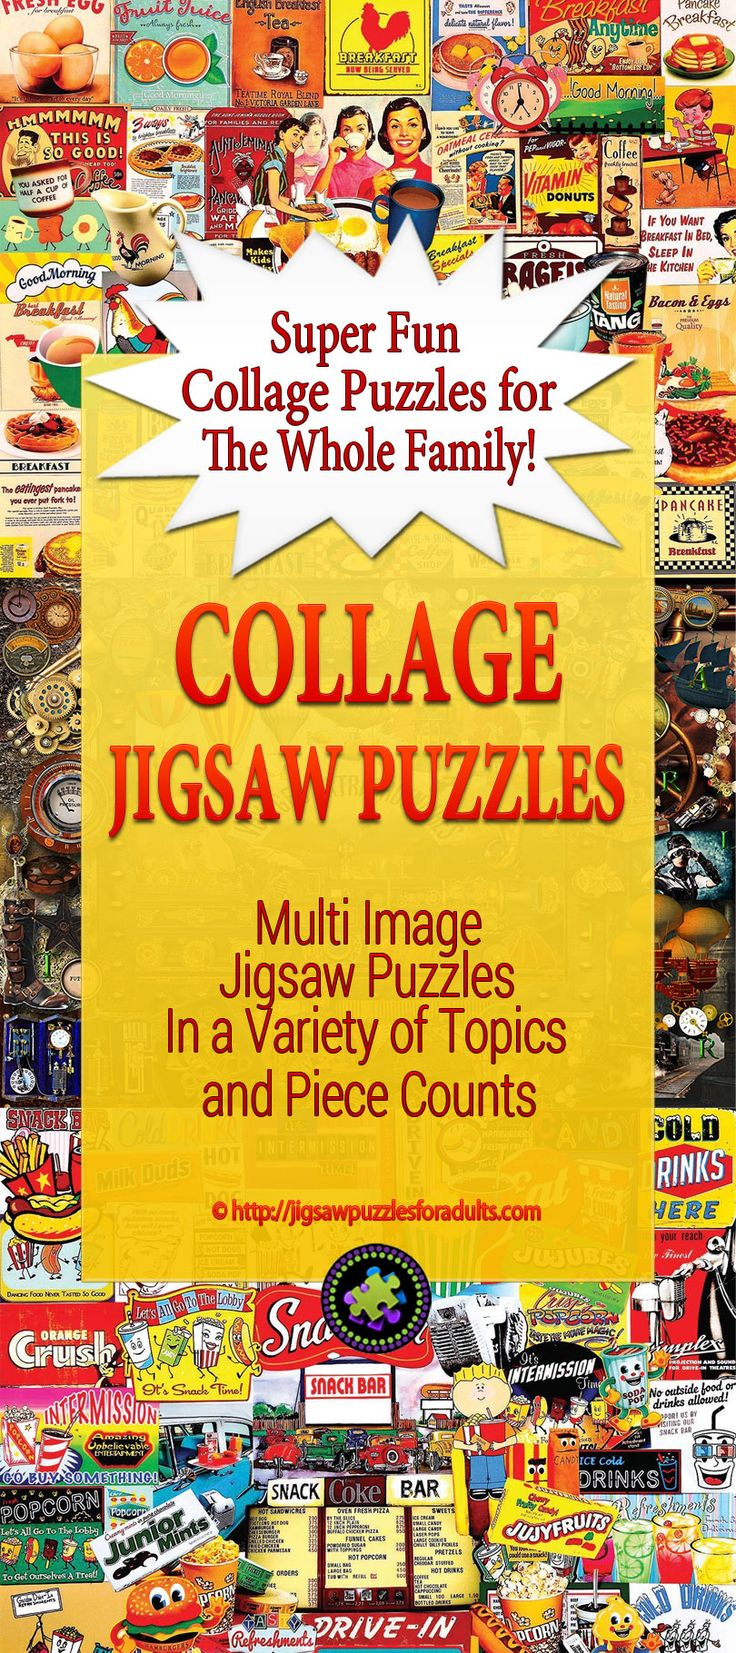 Collage Jigsaw Puzzles for adults are pretty darn cool!Try out one of these really awesome Collage Puzzles that are fun for the whole family. You'll find an amazing variety of collage jigsaw puzzles on just about any topic and piece count.